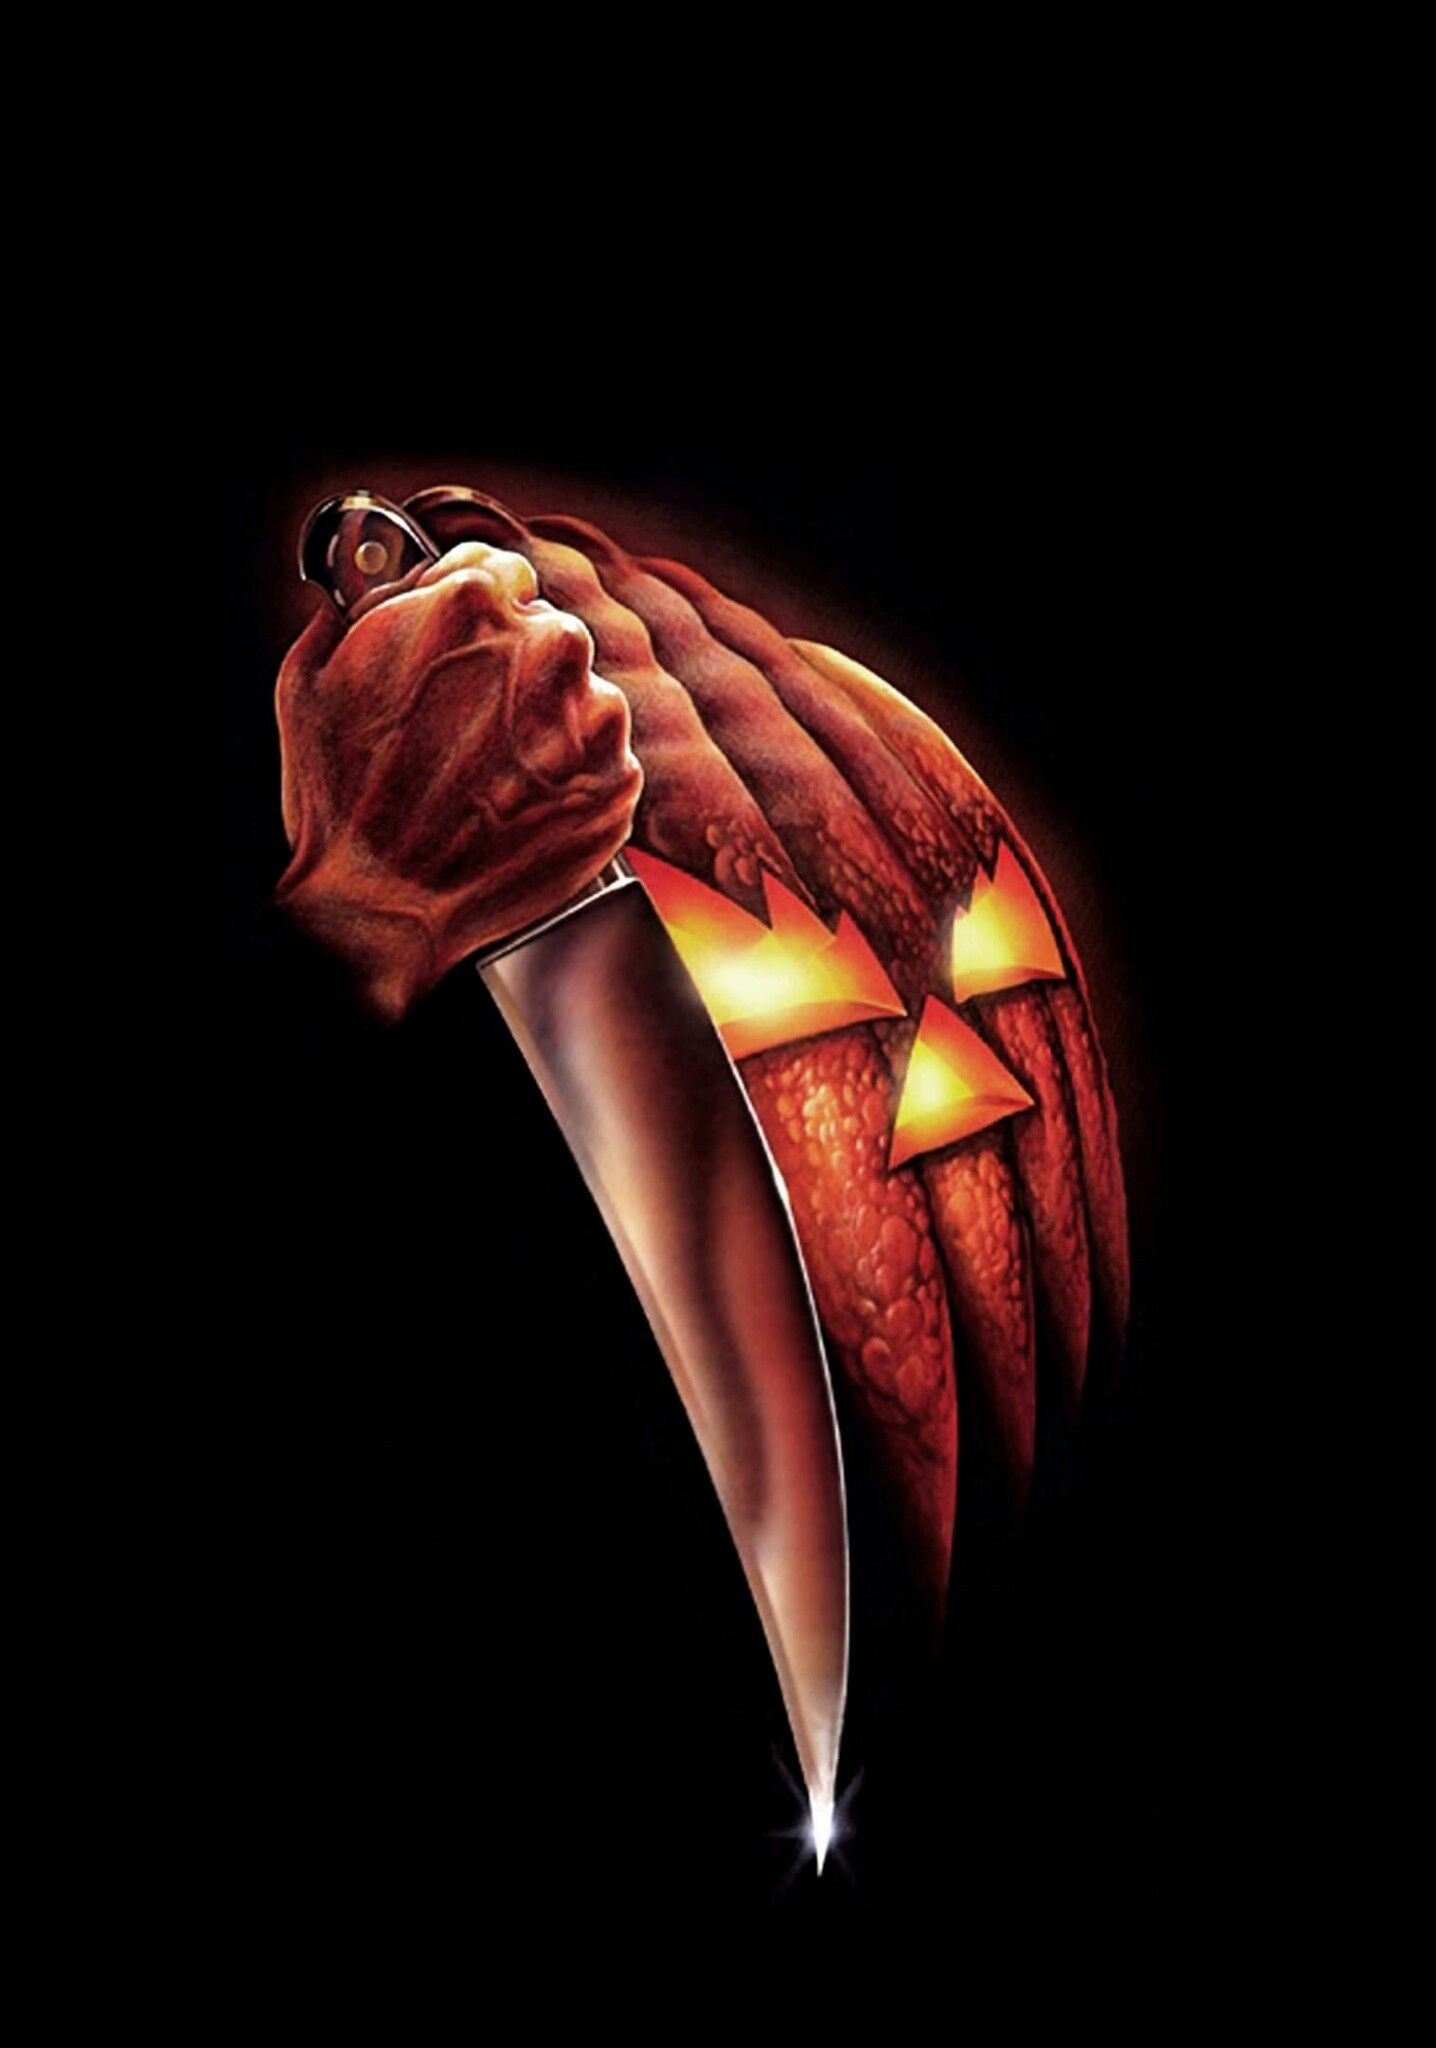 Halloween textless movie poster halloween Textless Movie